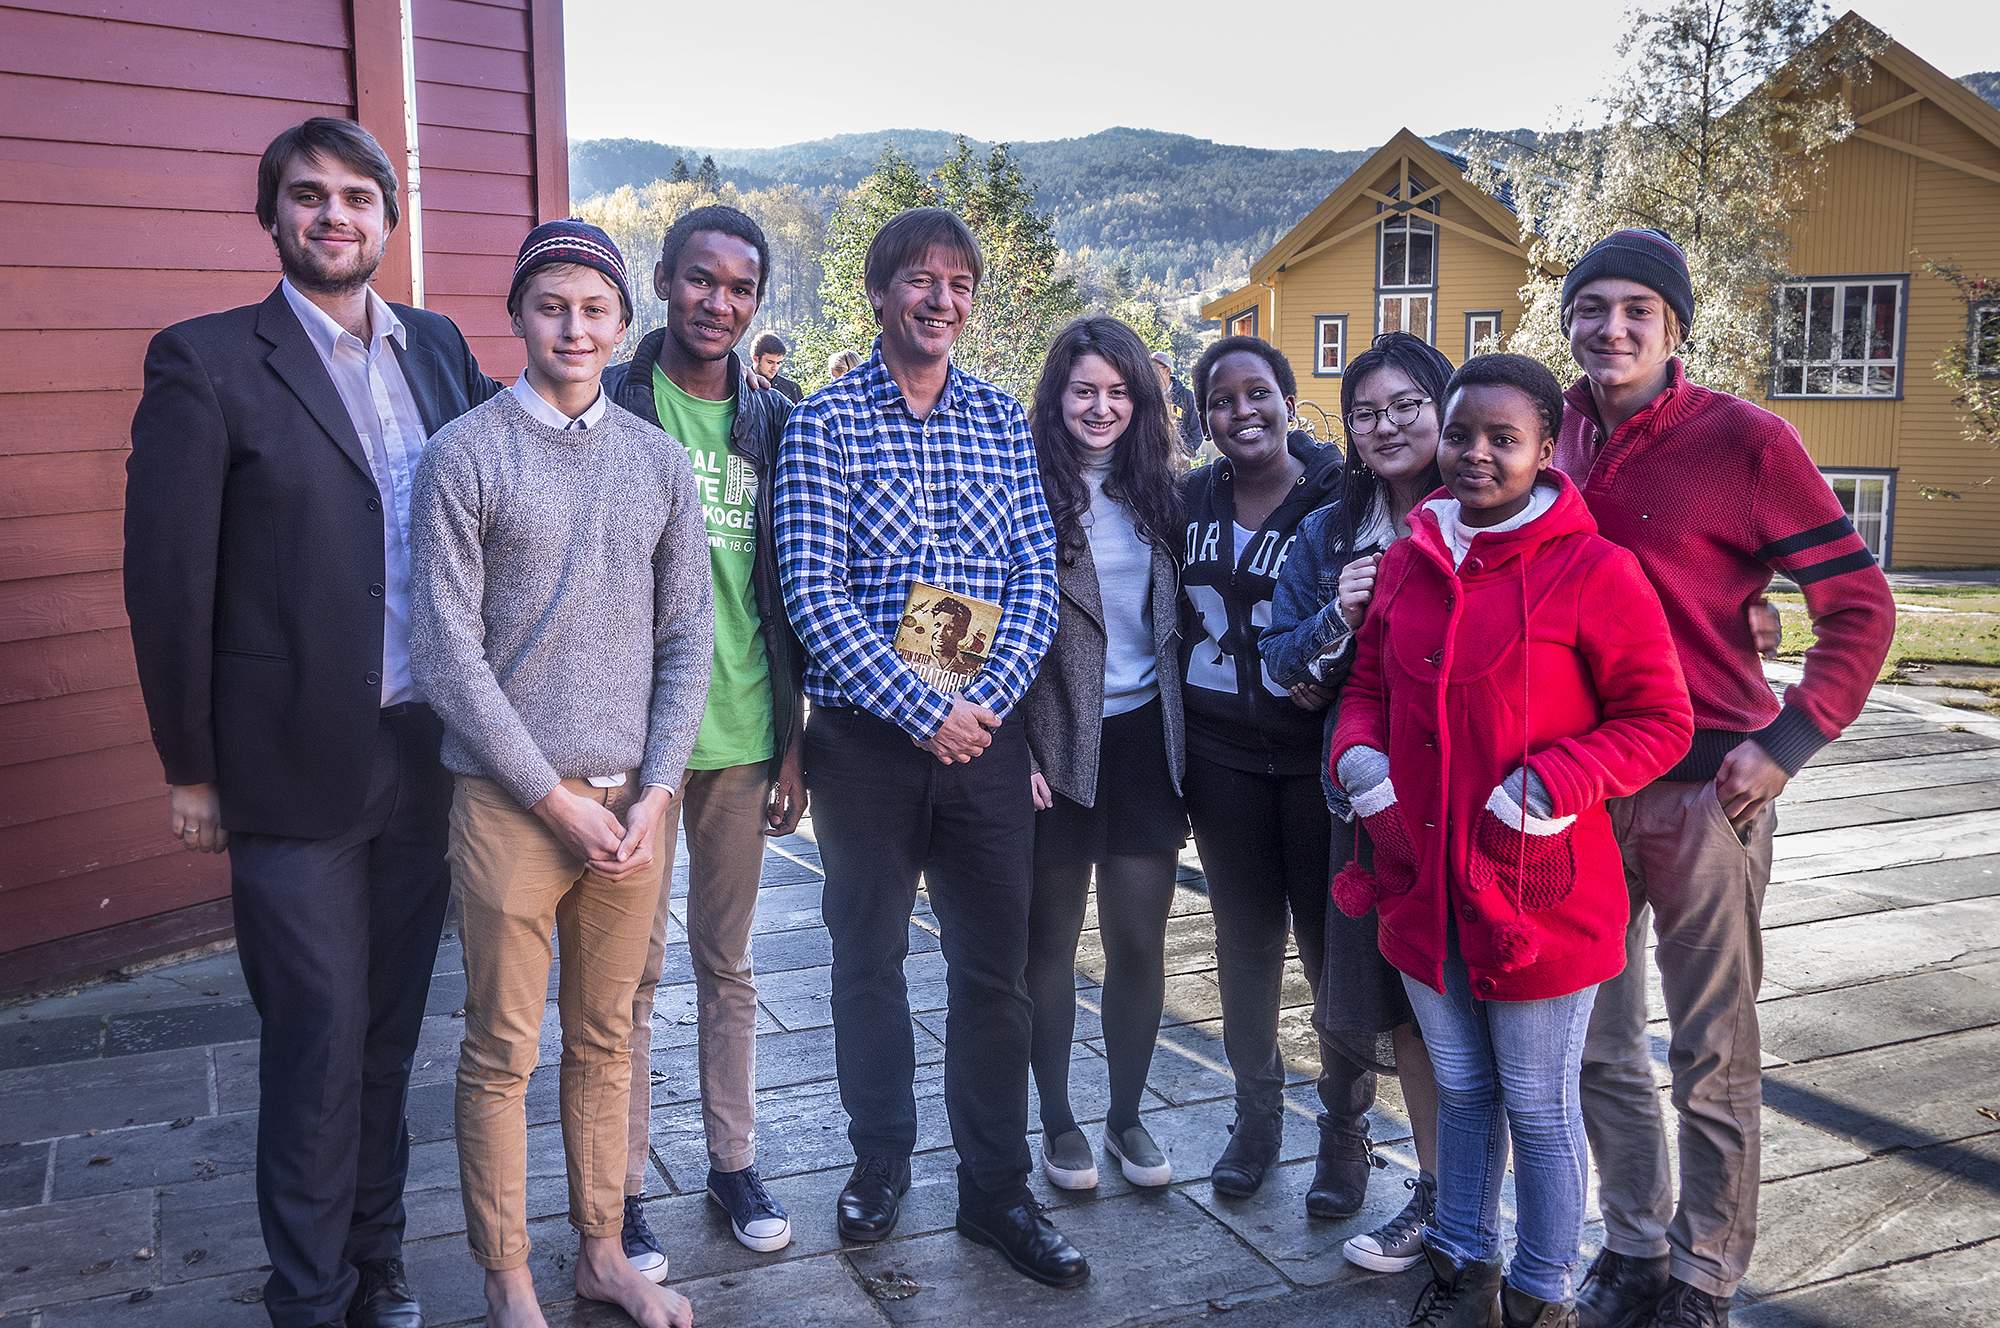 Svein Sæter (fourth from left) with students and staff